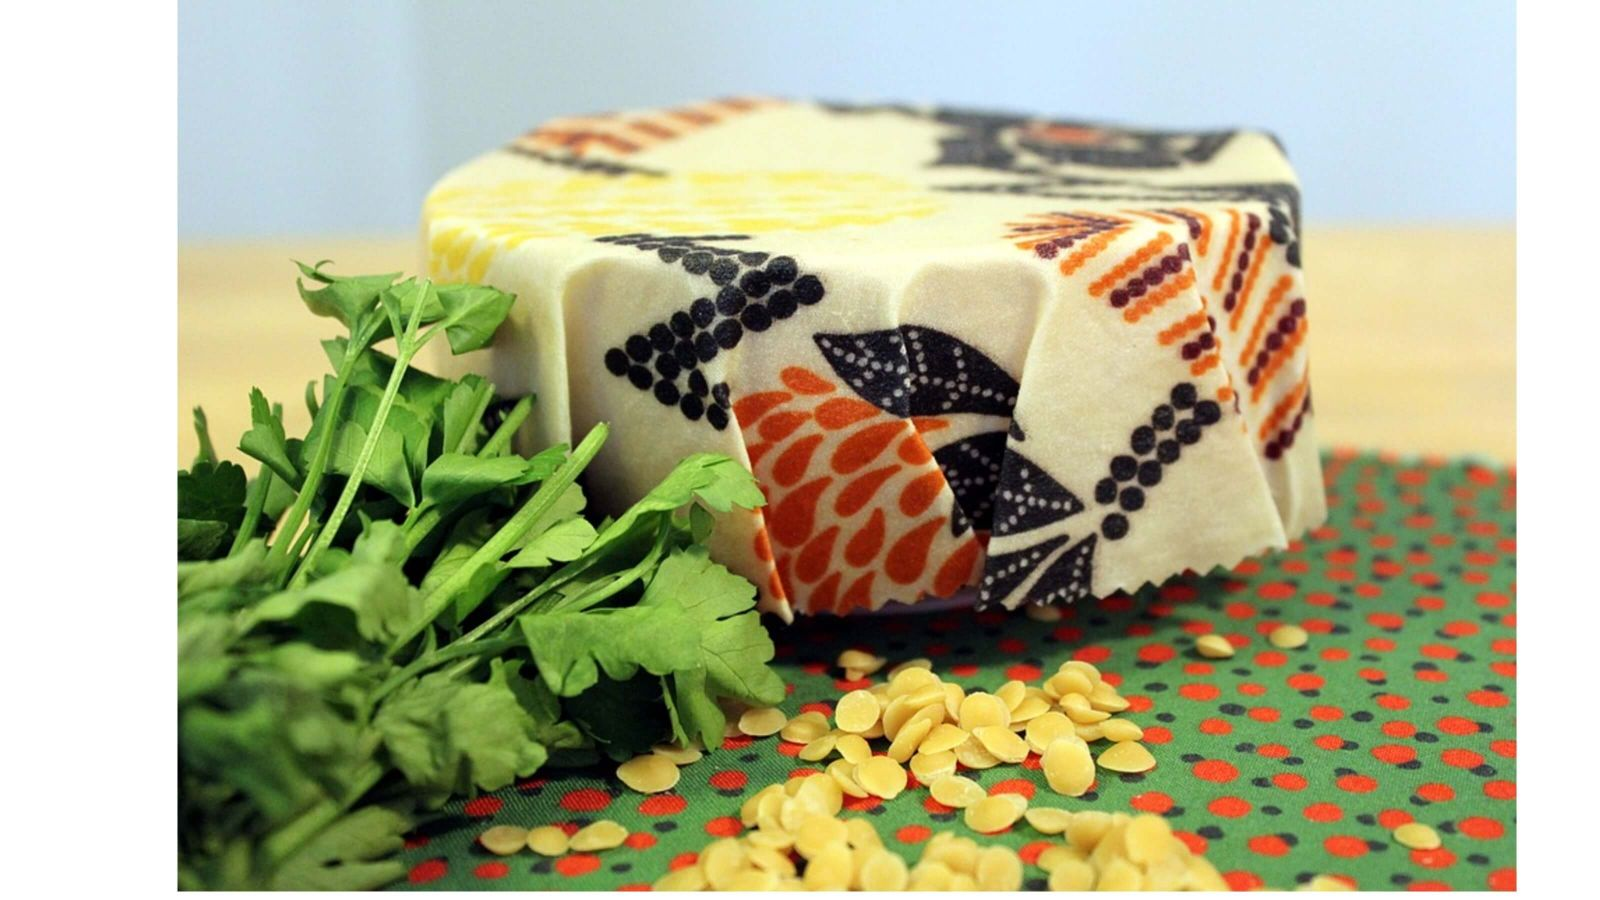 Bees wax wraps – container covered in beeswax wrap, celery and beeswax pellets.